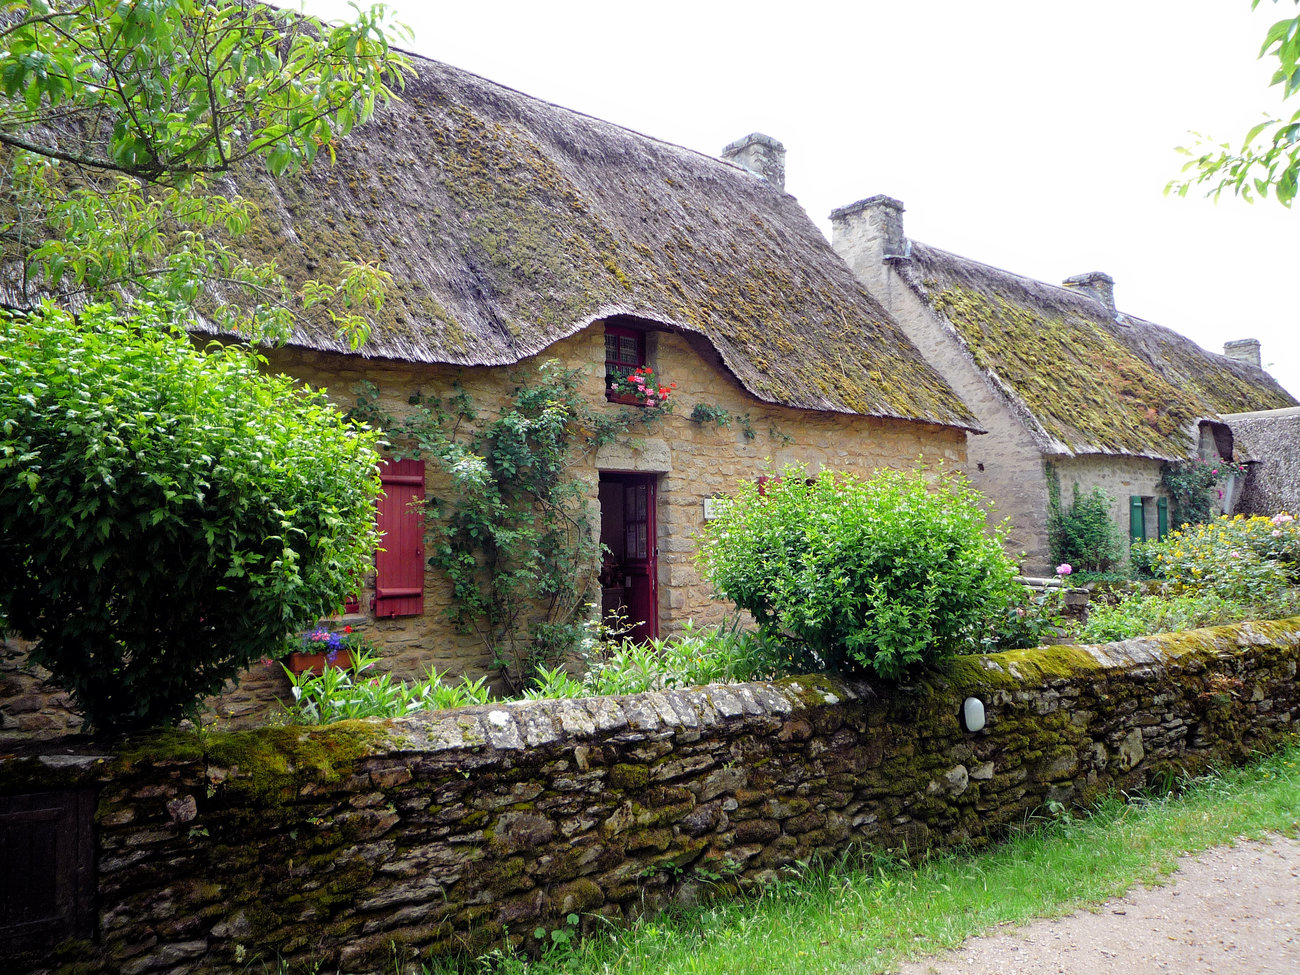 Breton house with thatched roof